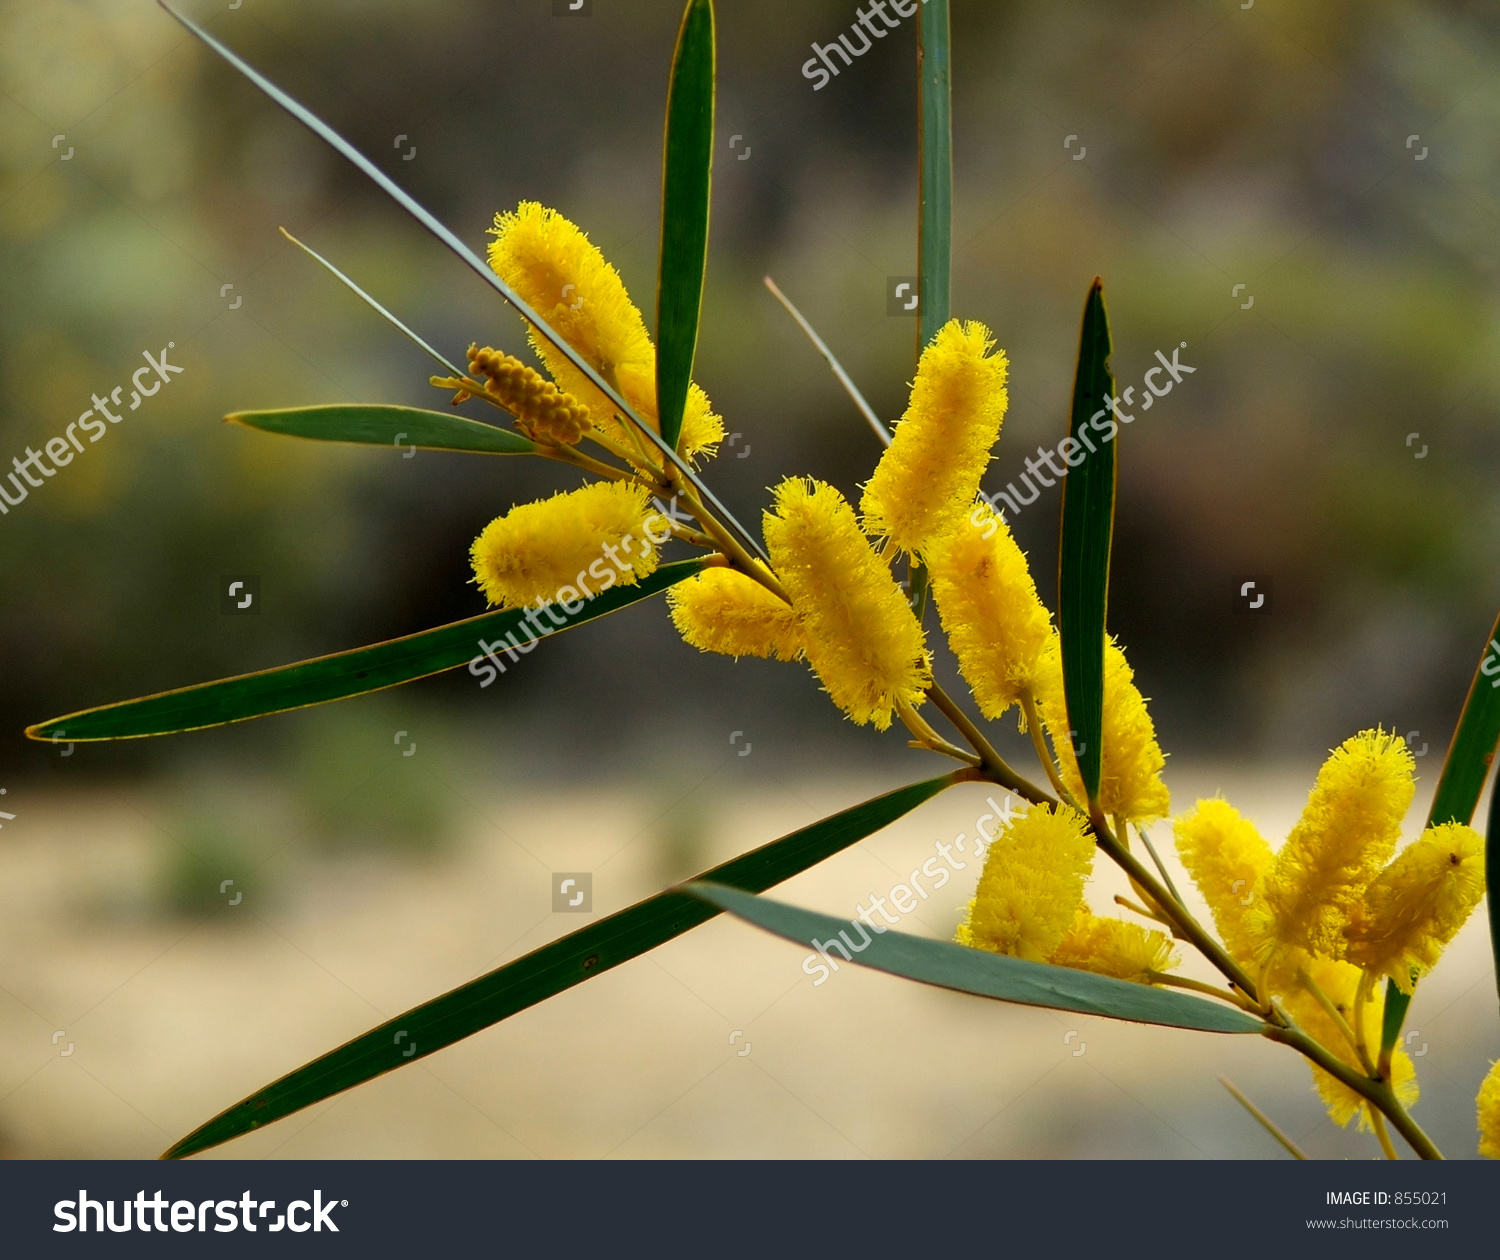 1500x1260 > Golden Wattle Wallpapers